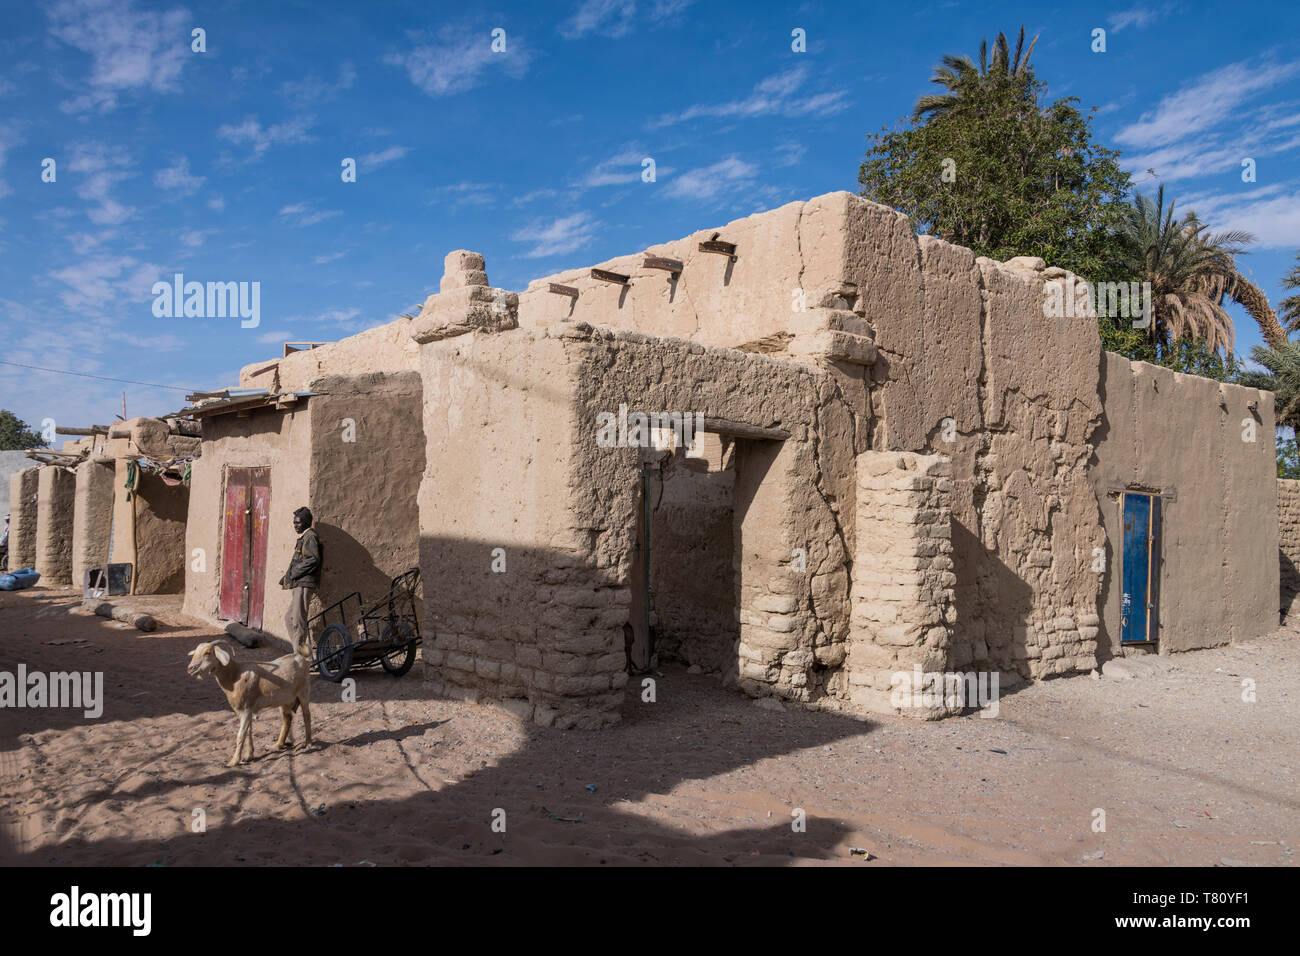 The desert town of Faya-Largeau, northern Chad, Africa - Stock Image